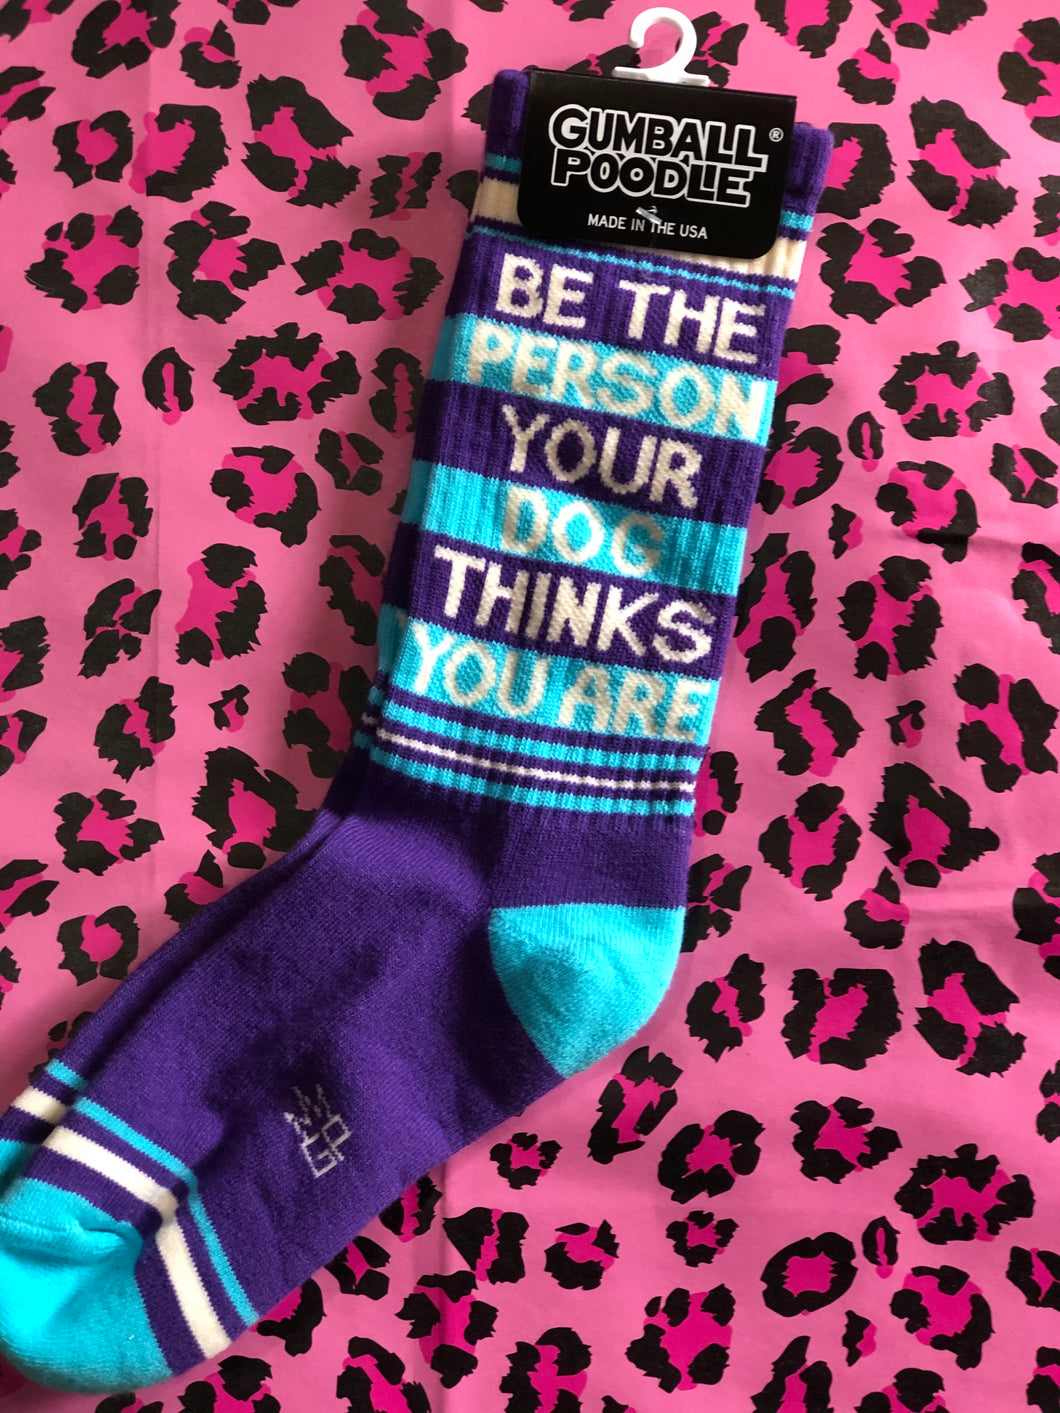 Be the Person Your Dog Thinks You Are Socks by Gumball Poodle | Socks - 80s 90s Retro Vintage Clothing | Spark Pretty